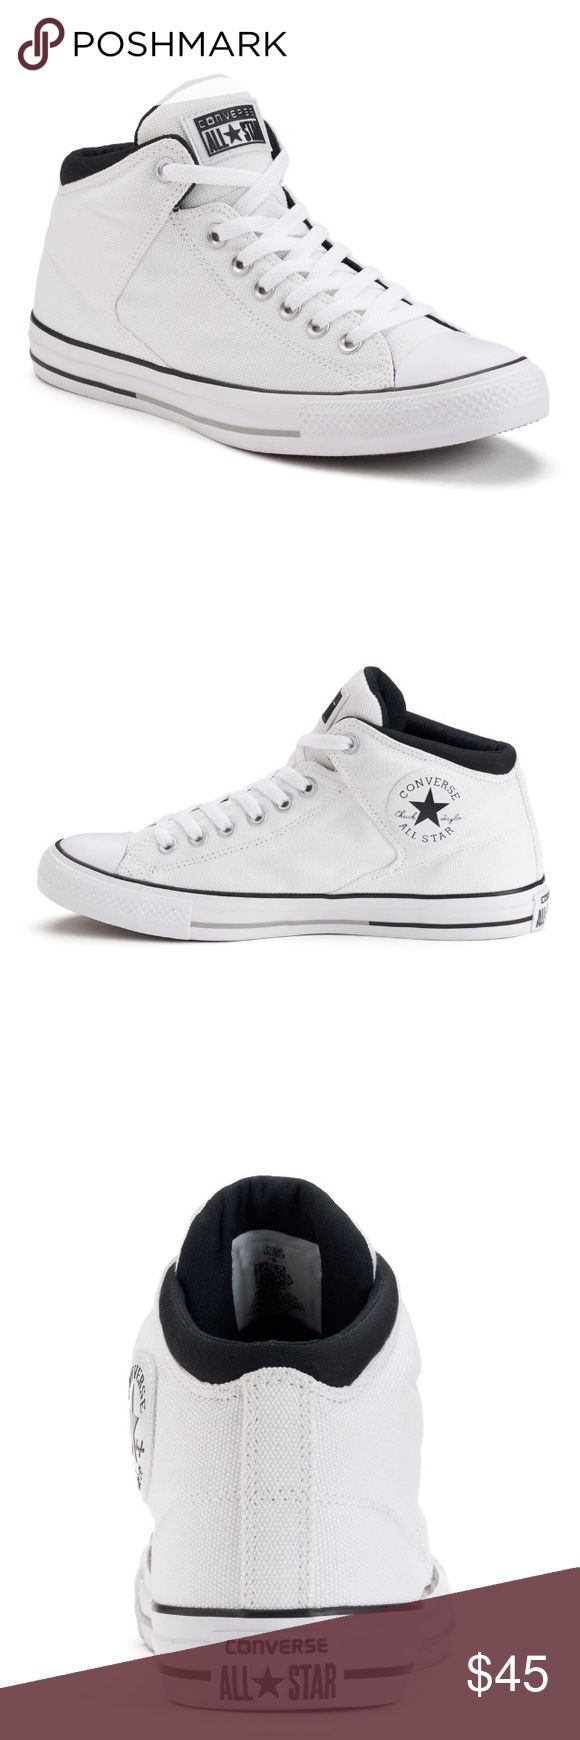 Men's Converse Chuck Taylor All Star Sneakers Add casual comfort to your everyday look wearing these men's High Street sneakers from Converse.  *Padded collar & Tongue *Inner elastic for easy on/off *Vulcanized sole *Canvas upper/lining, rubber outside, round toe, Lace up closure and padded footbed.  **New in box** Converse Shoes Sneakers